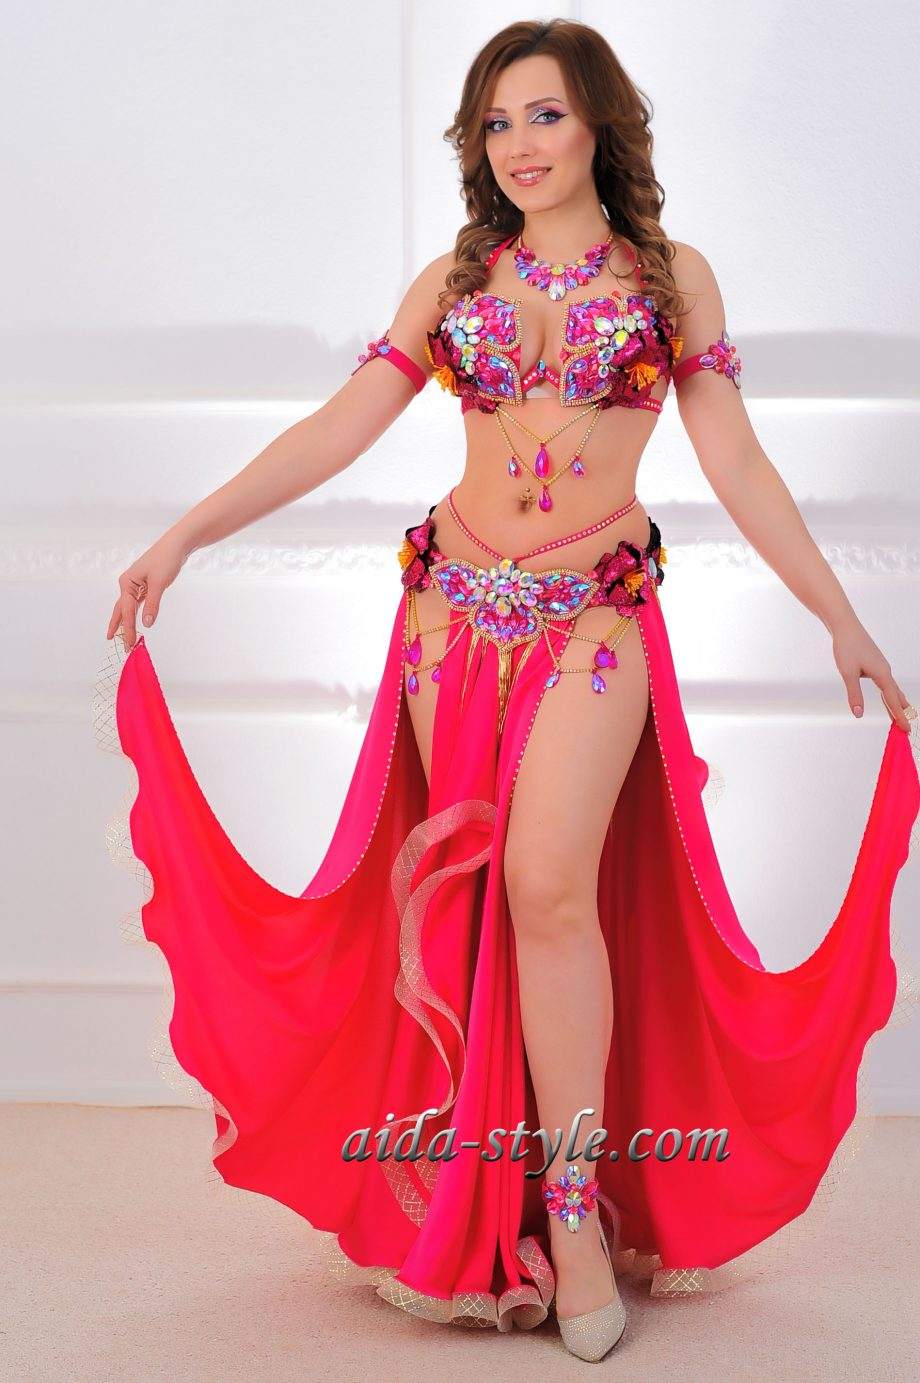 belly dance outfit pink